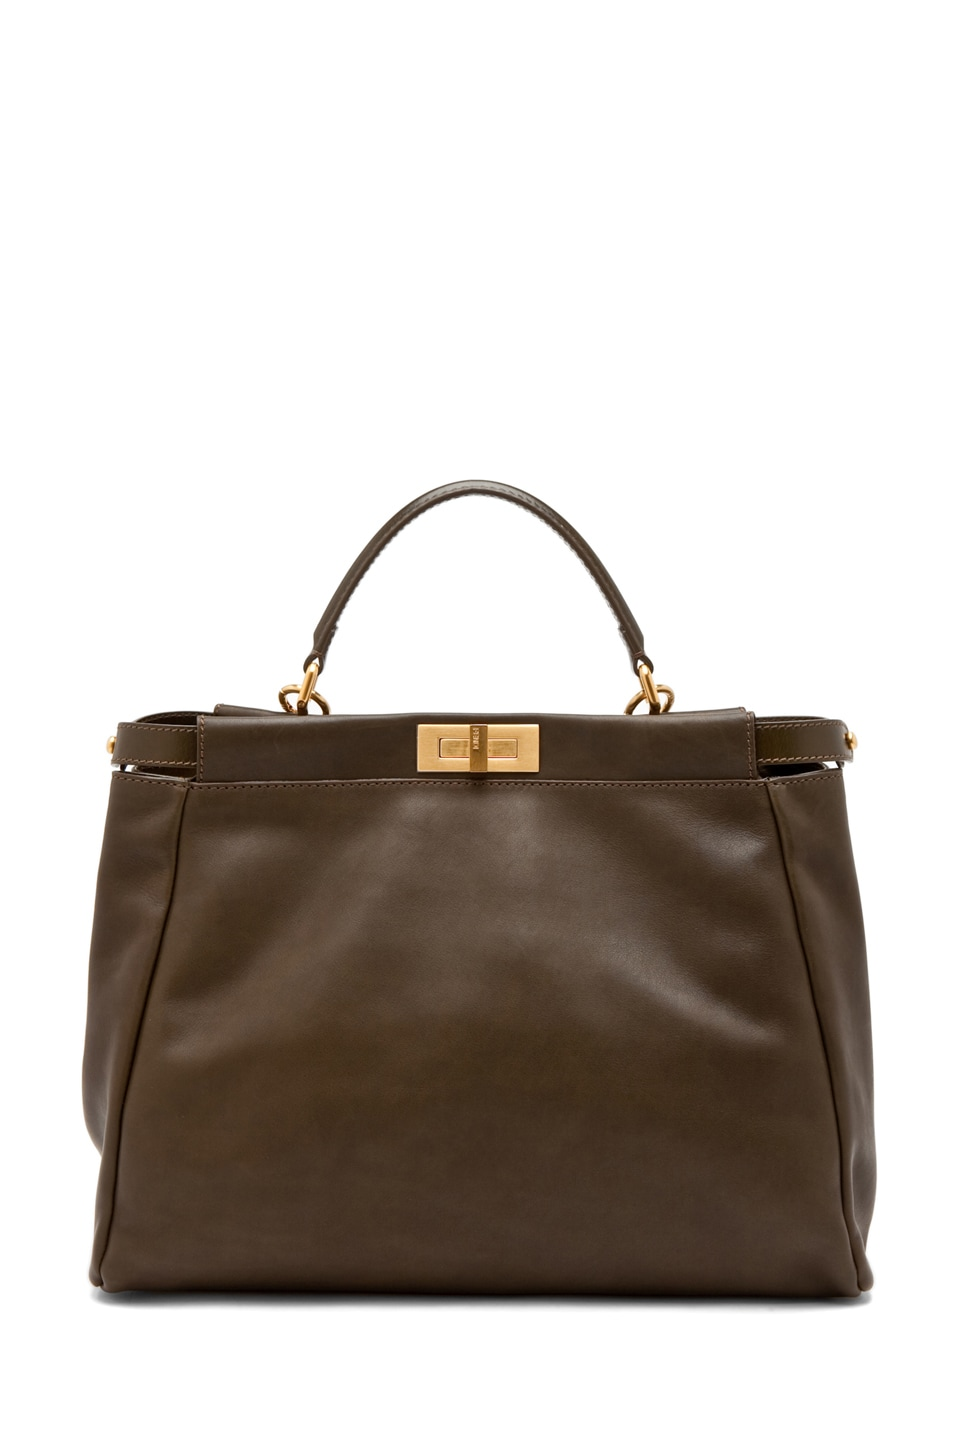 Image 2 of Fendi Peekaboo Handbag in Olive